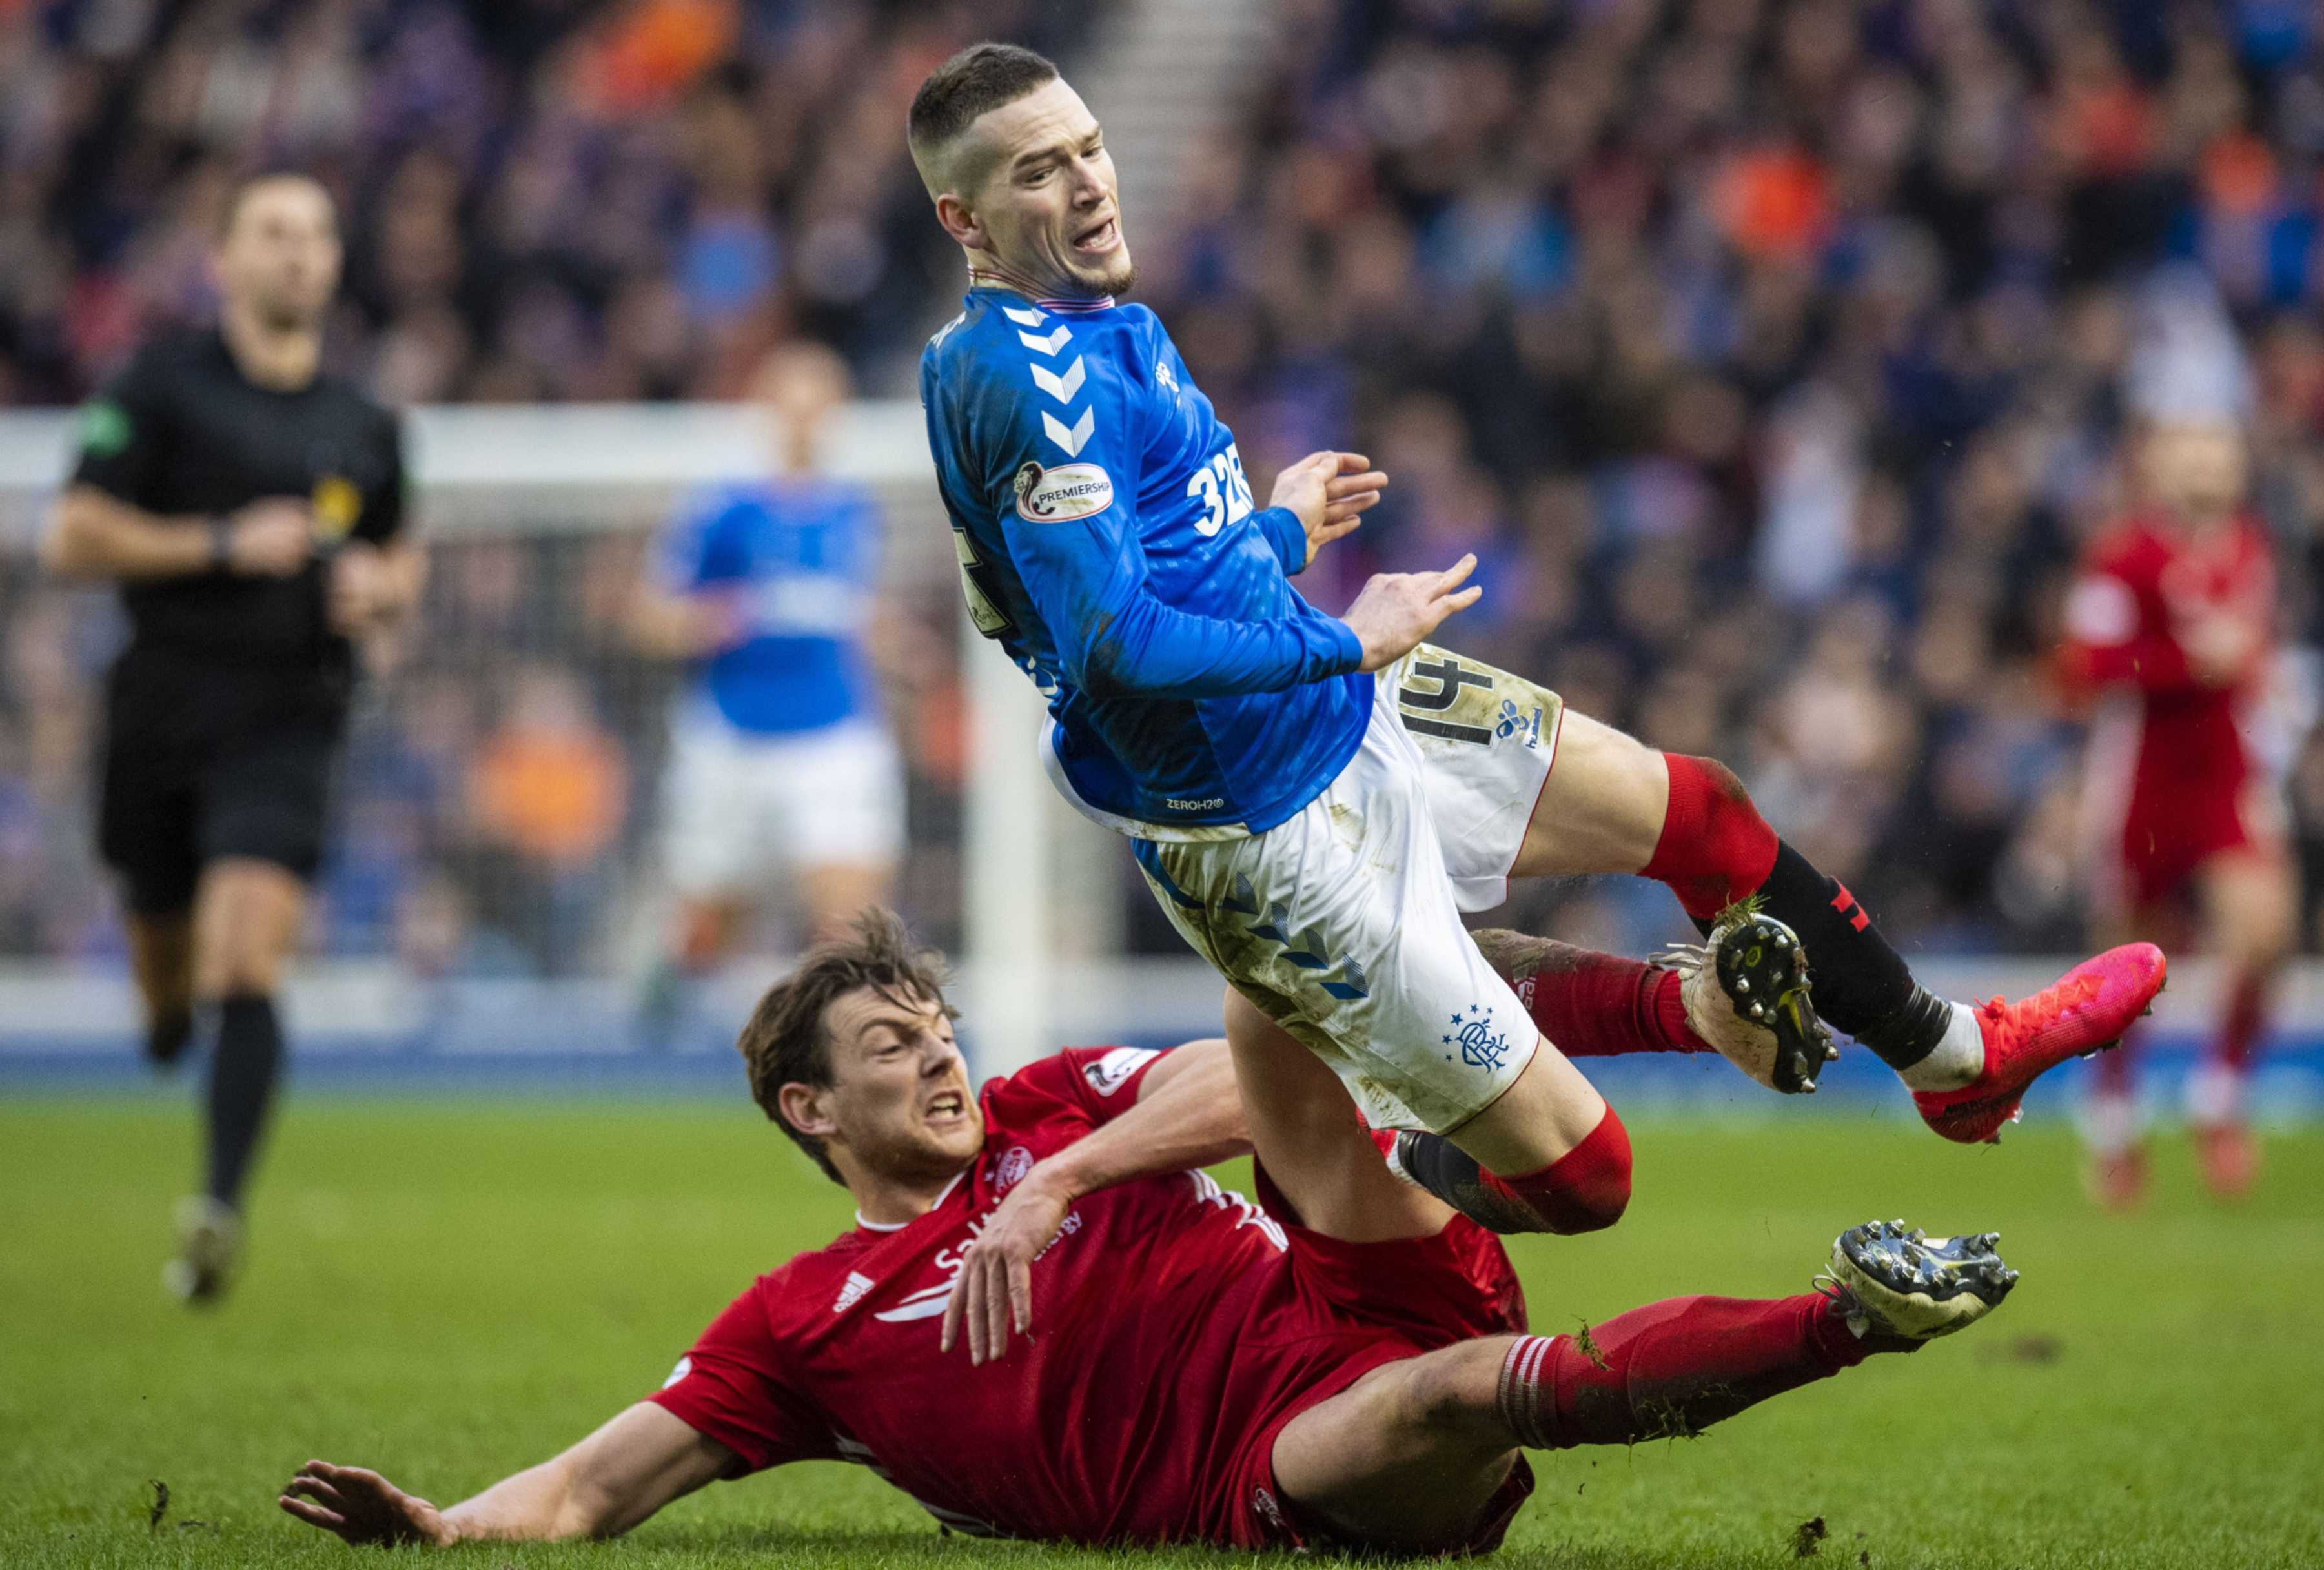 Ash Taylor tackles Ryan Kent during Aberdeen's 0-0 draw with Rangers at Ibrox